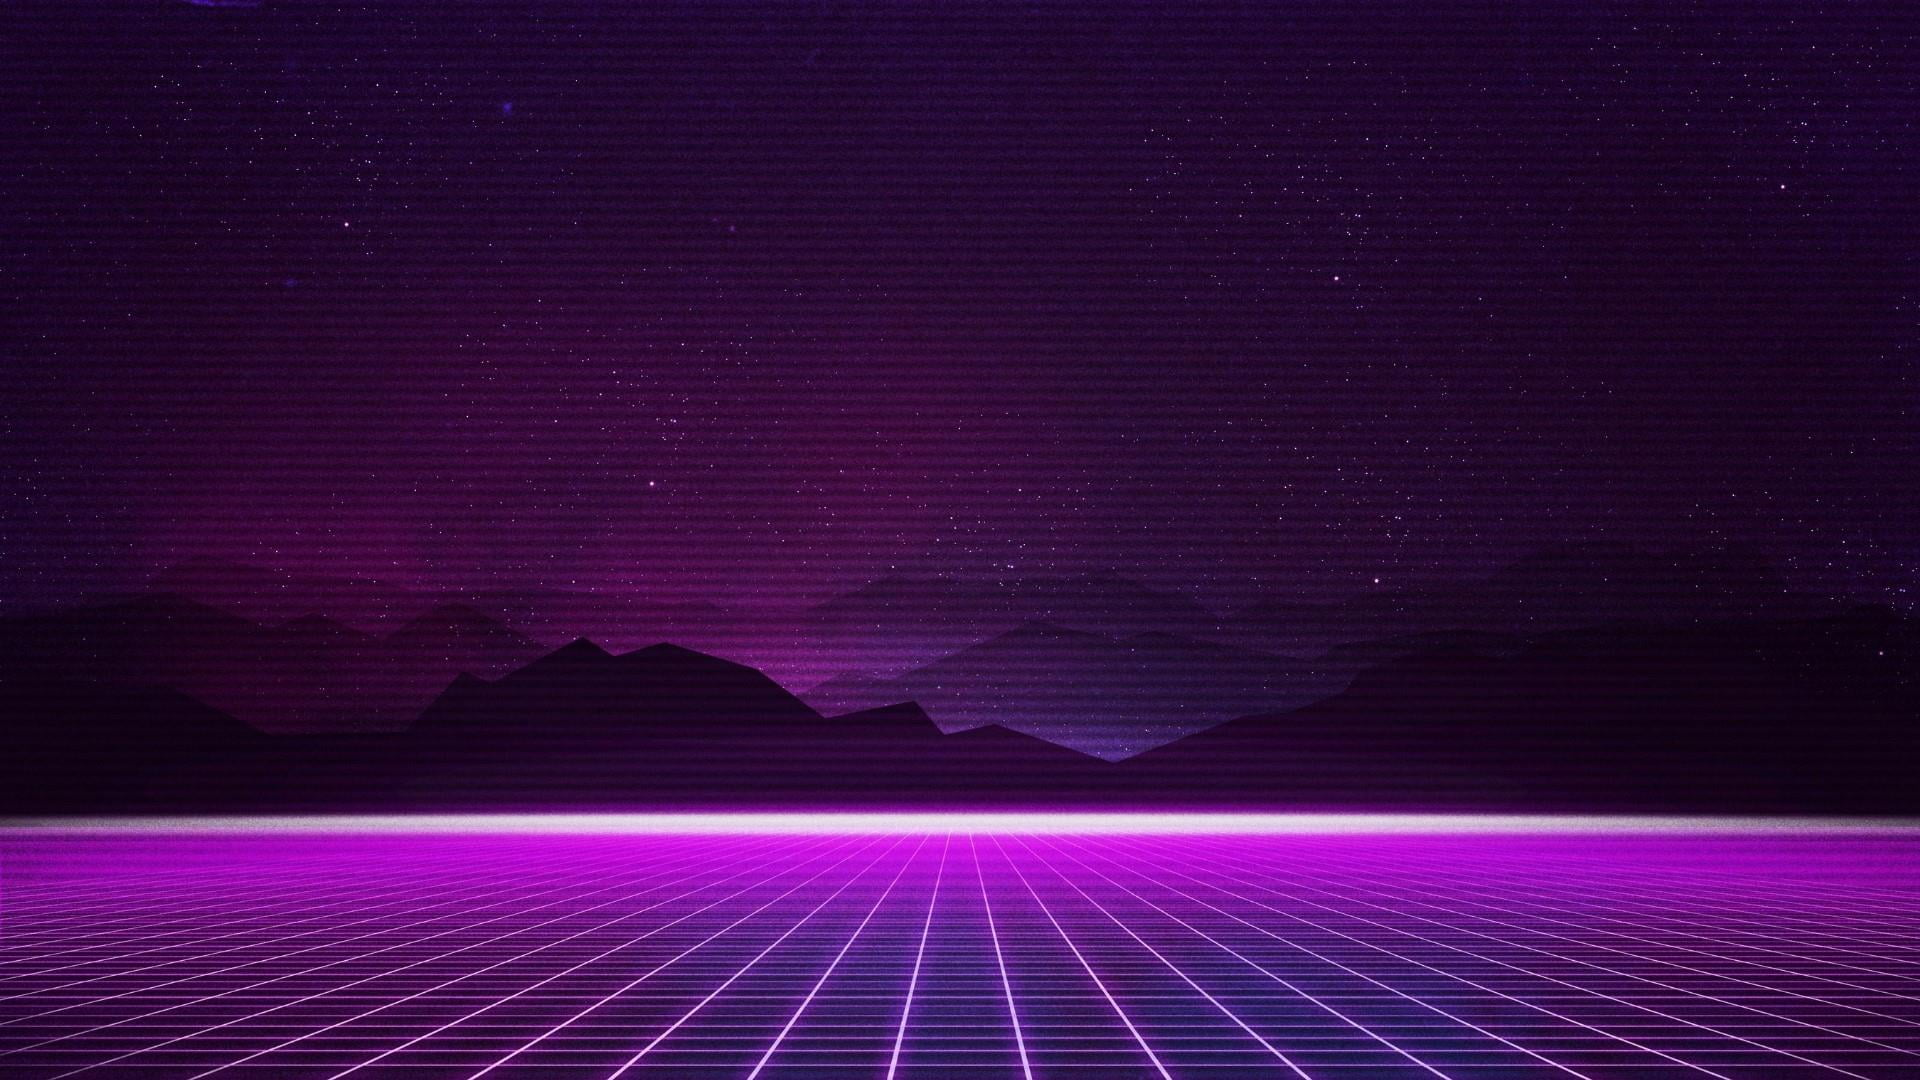 Hd Neon Wallpaper Posted By Ethan Thompson